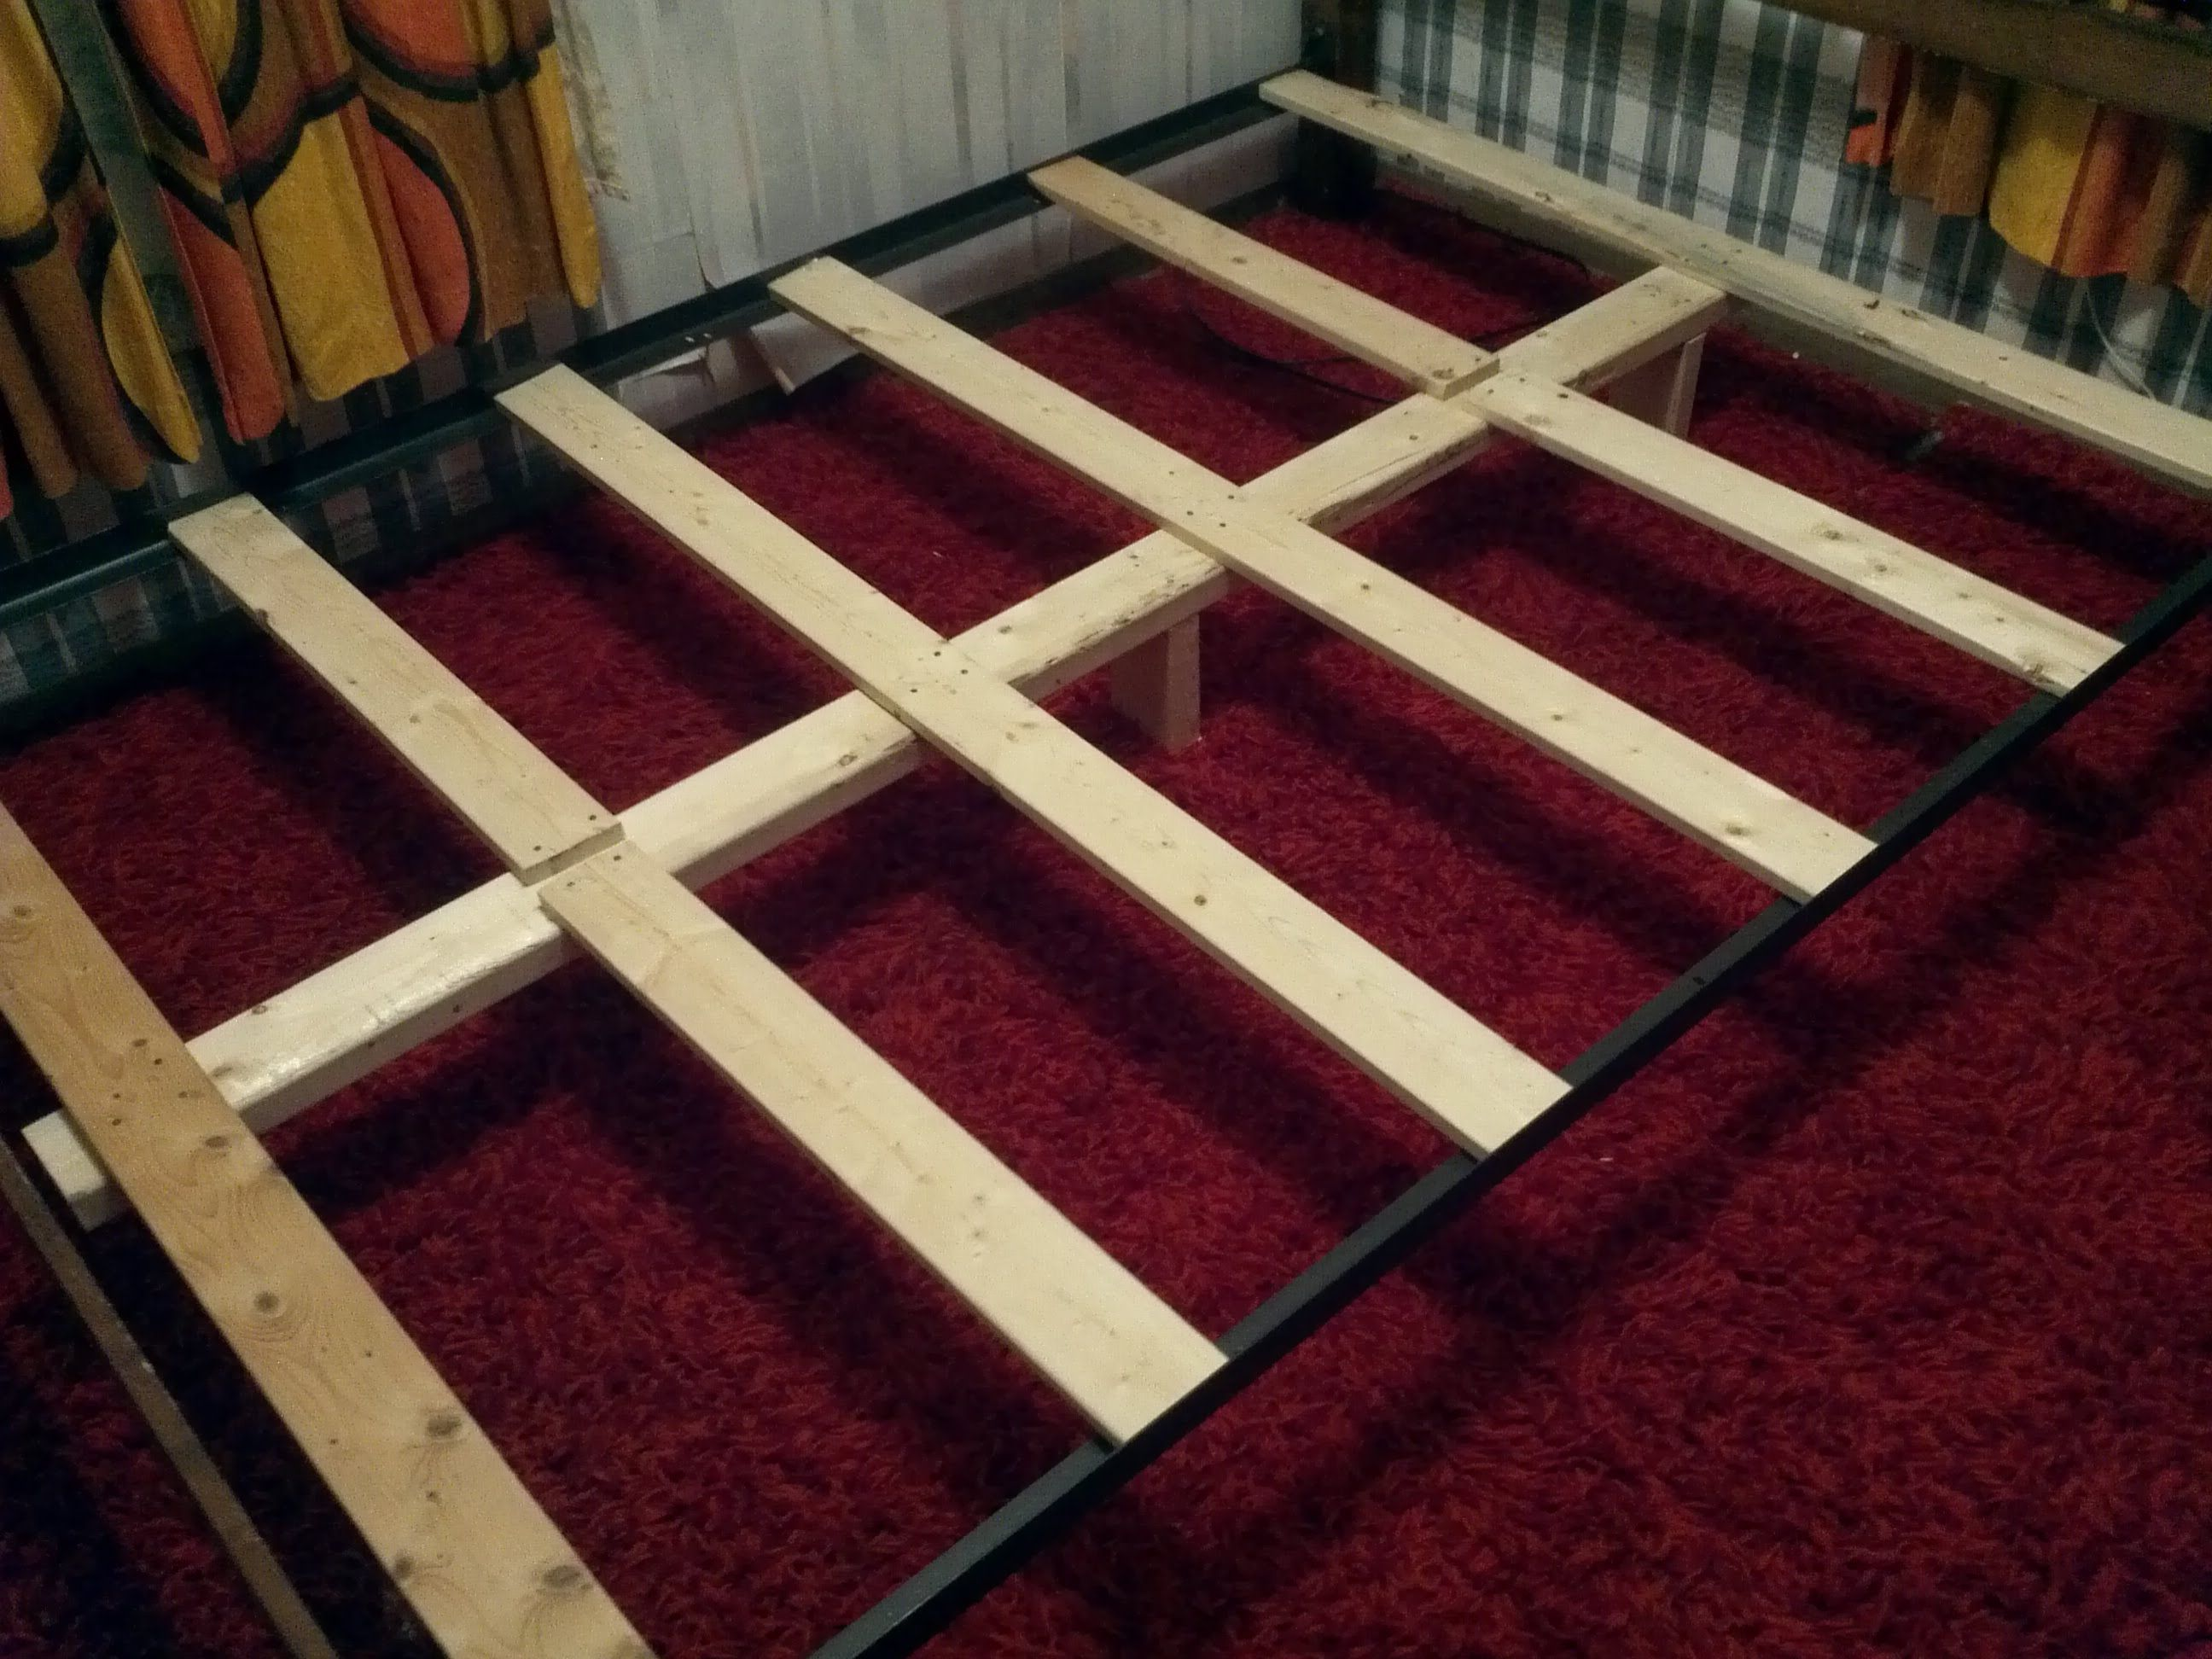 How To Support A Mattress Without Box Spring Build Diy Bed Frame For 10